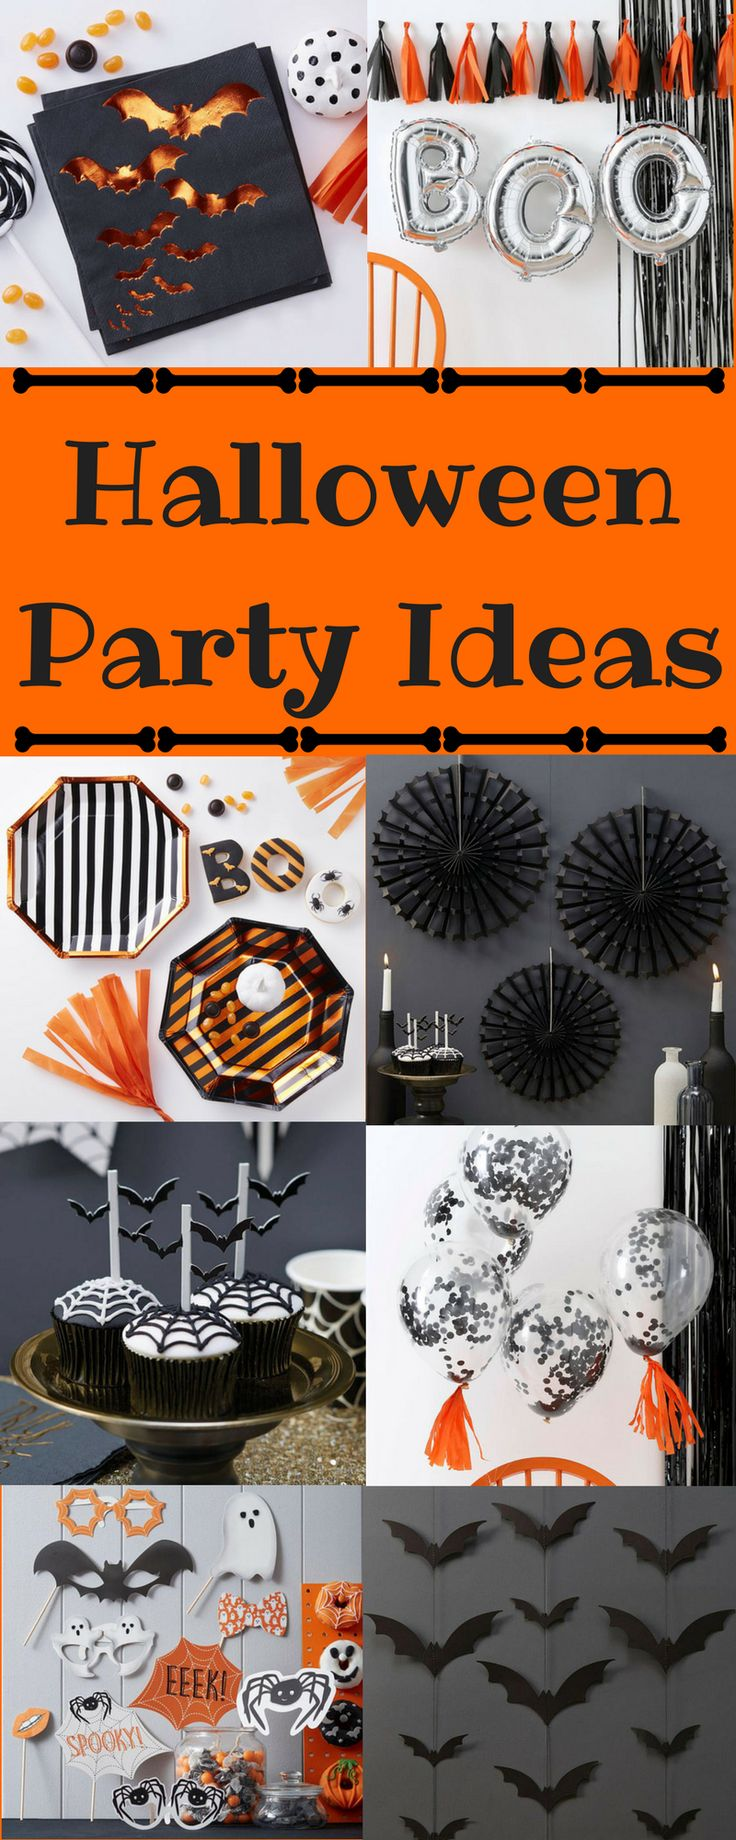 Halloween Party Ideas, Halloween party decorations, Halloween party games, afflink